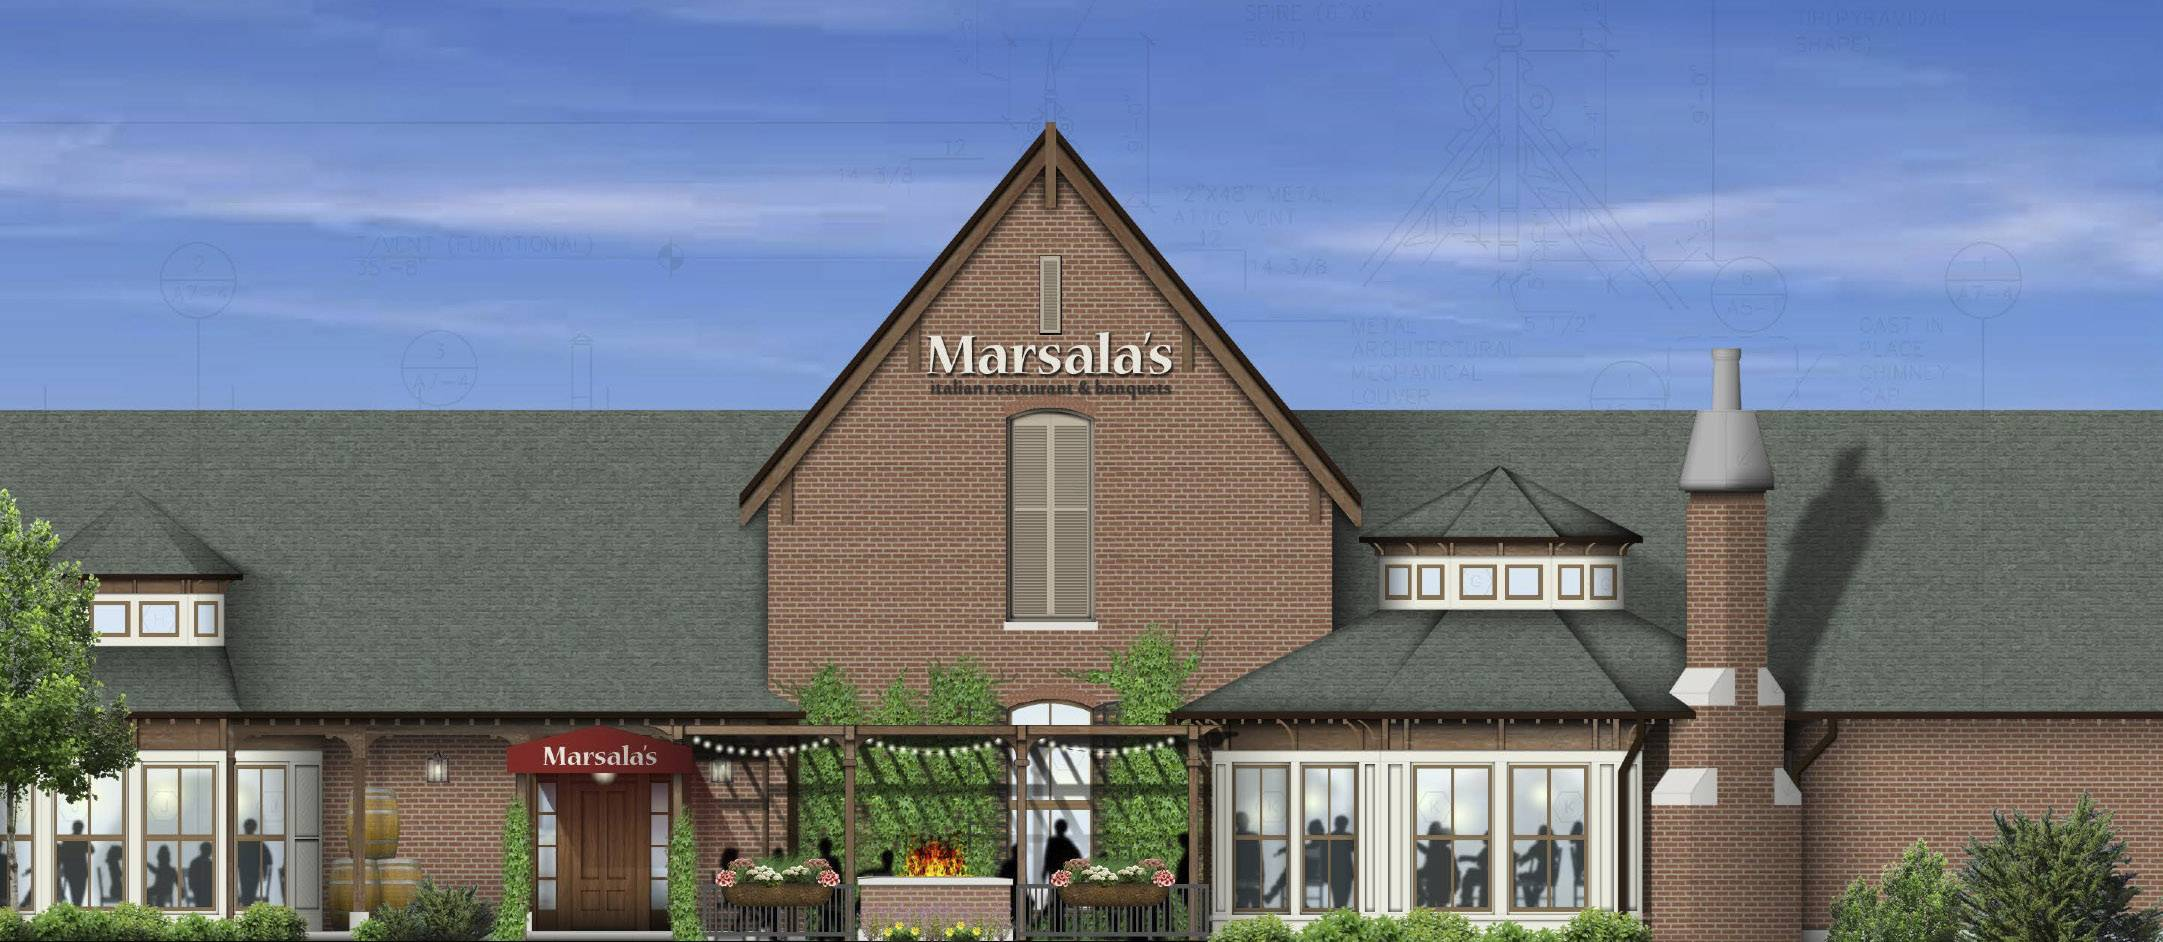 Marsala's Italian Kitchen is expected to open soon in Huntley.